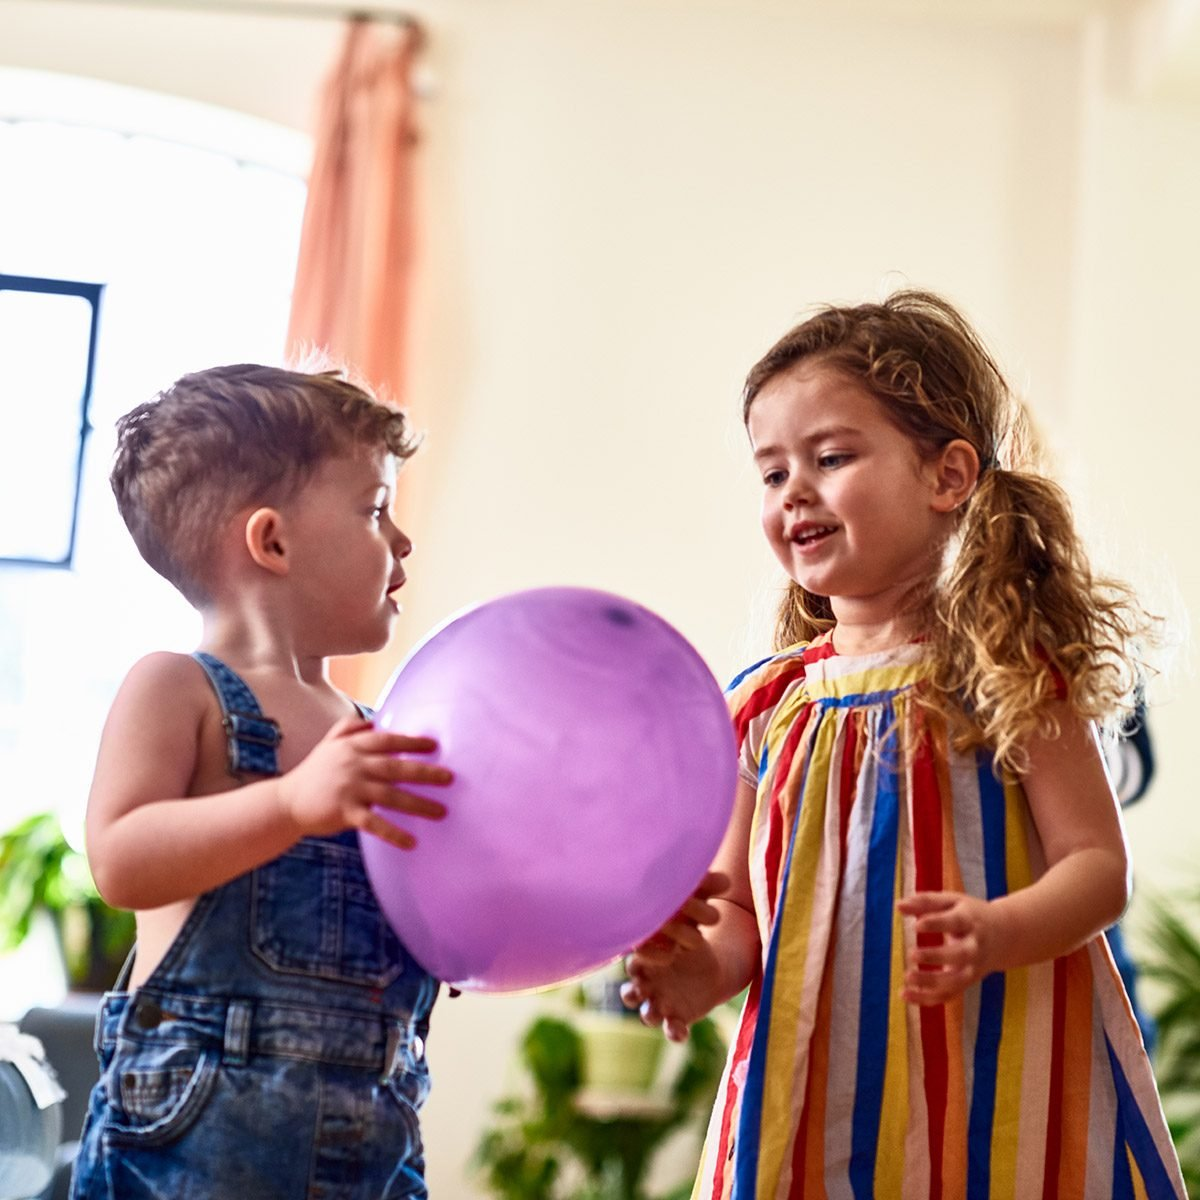 Young boy and girl having fun playing game with purple balloon at home, low angle, sharing, togetherness, friendship